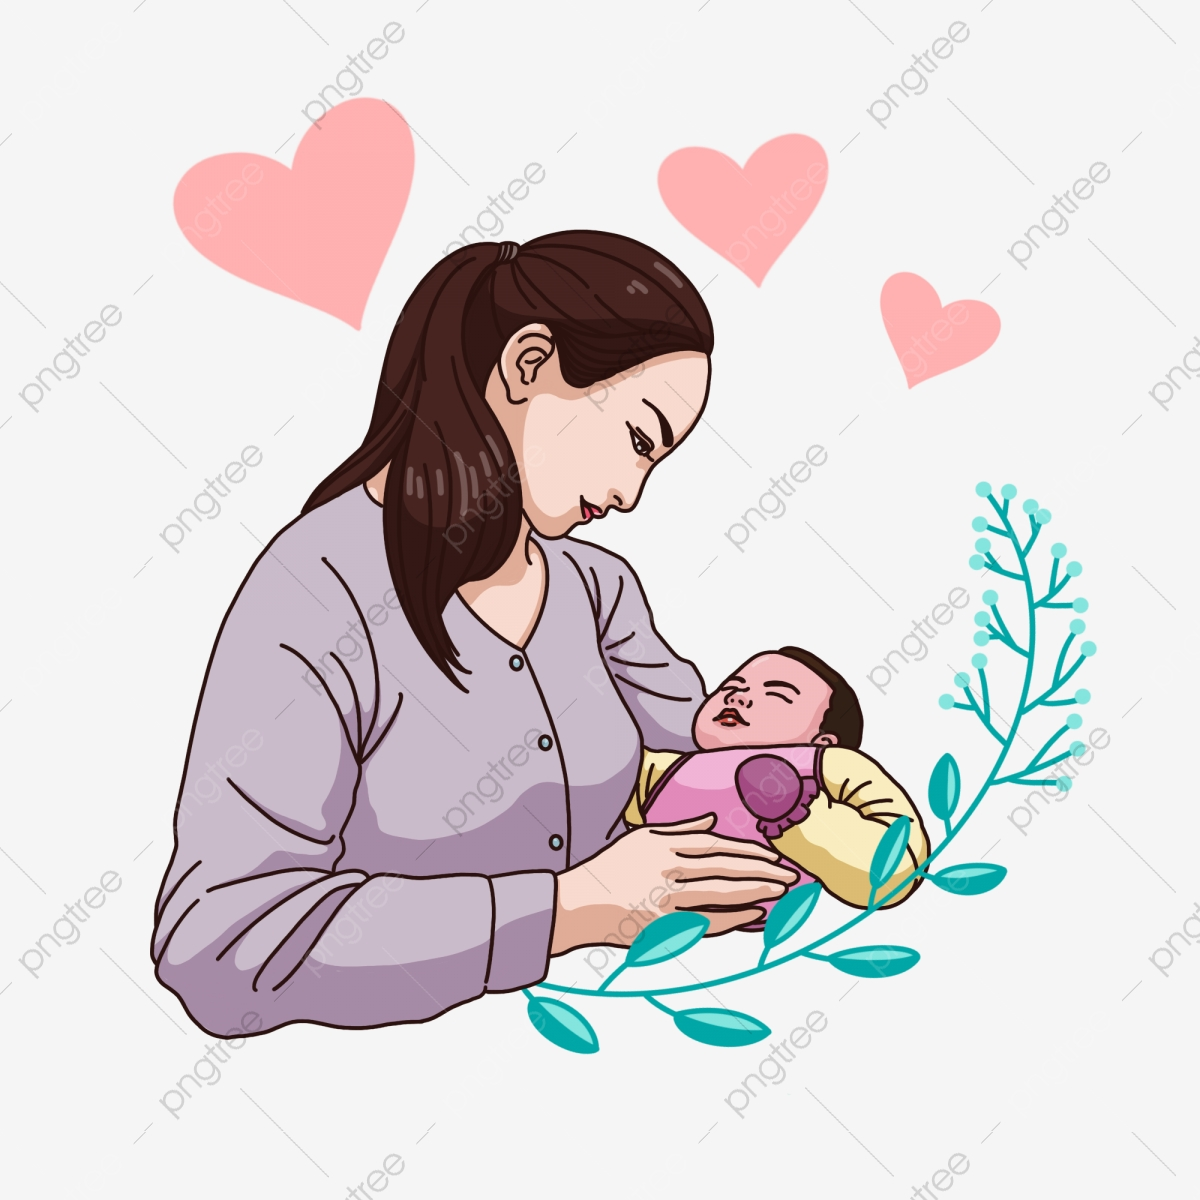 Mother Embraces Baby Mother Love Element Mother Mother Love Baby Png Transparent Clipart Image And Psd File For Free Download